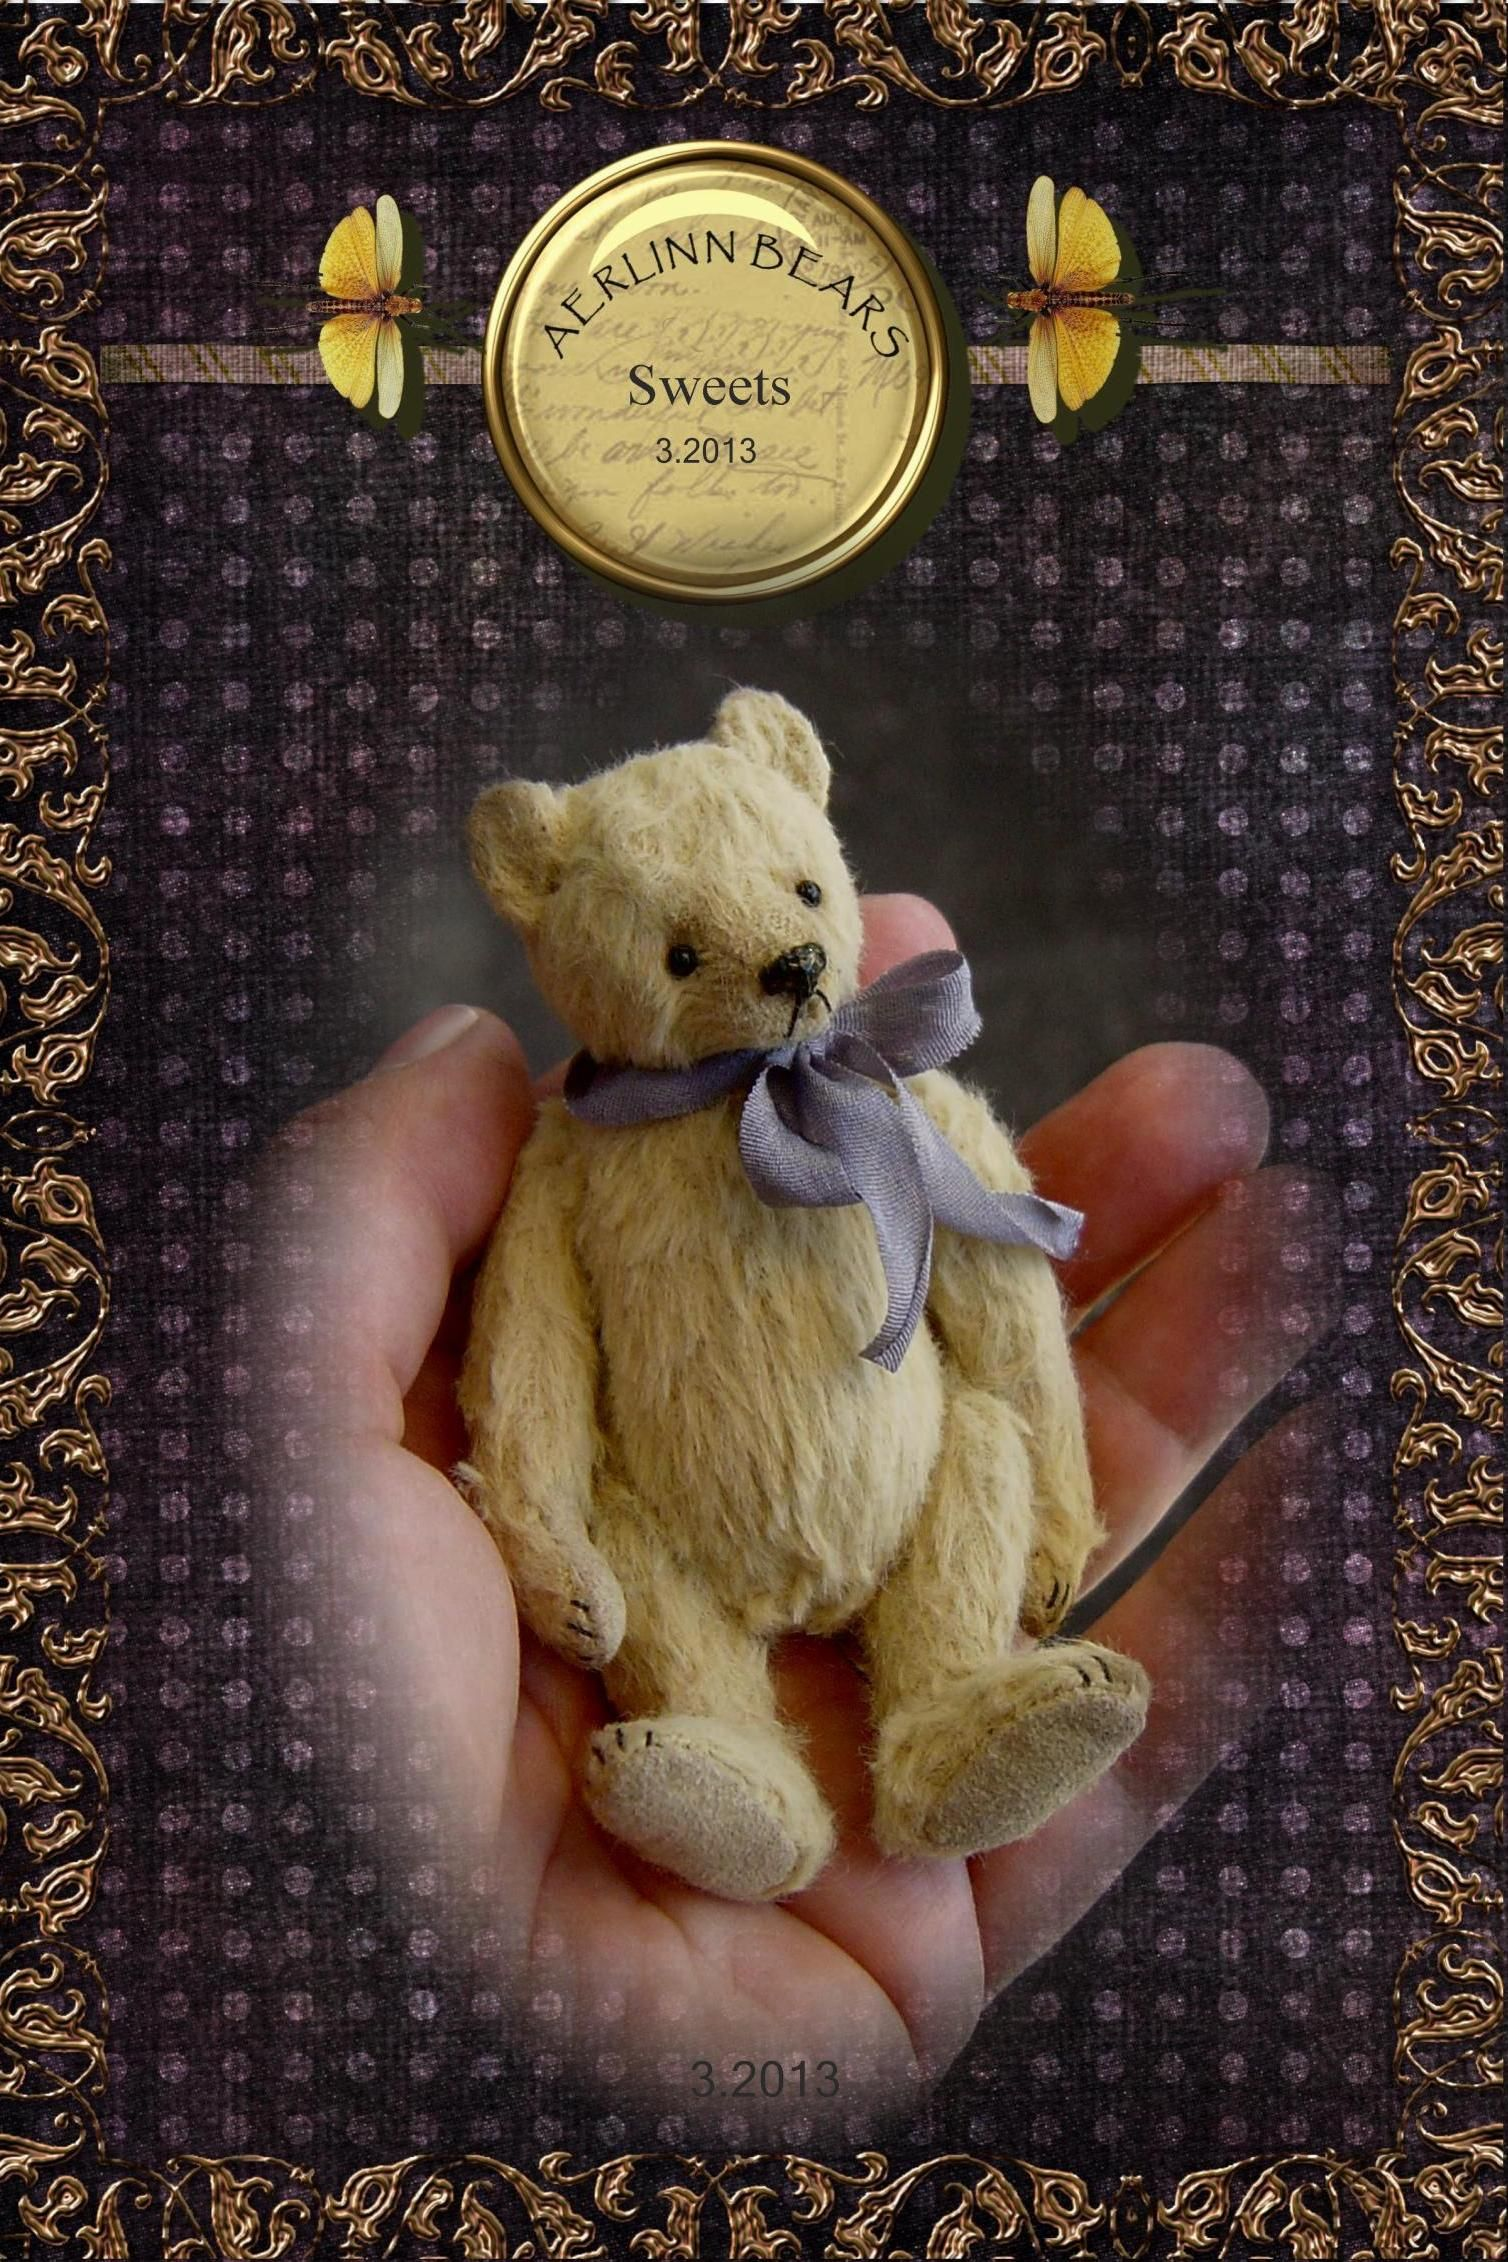 Sweets, miniature Ted made in Viscose